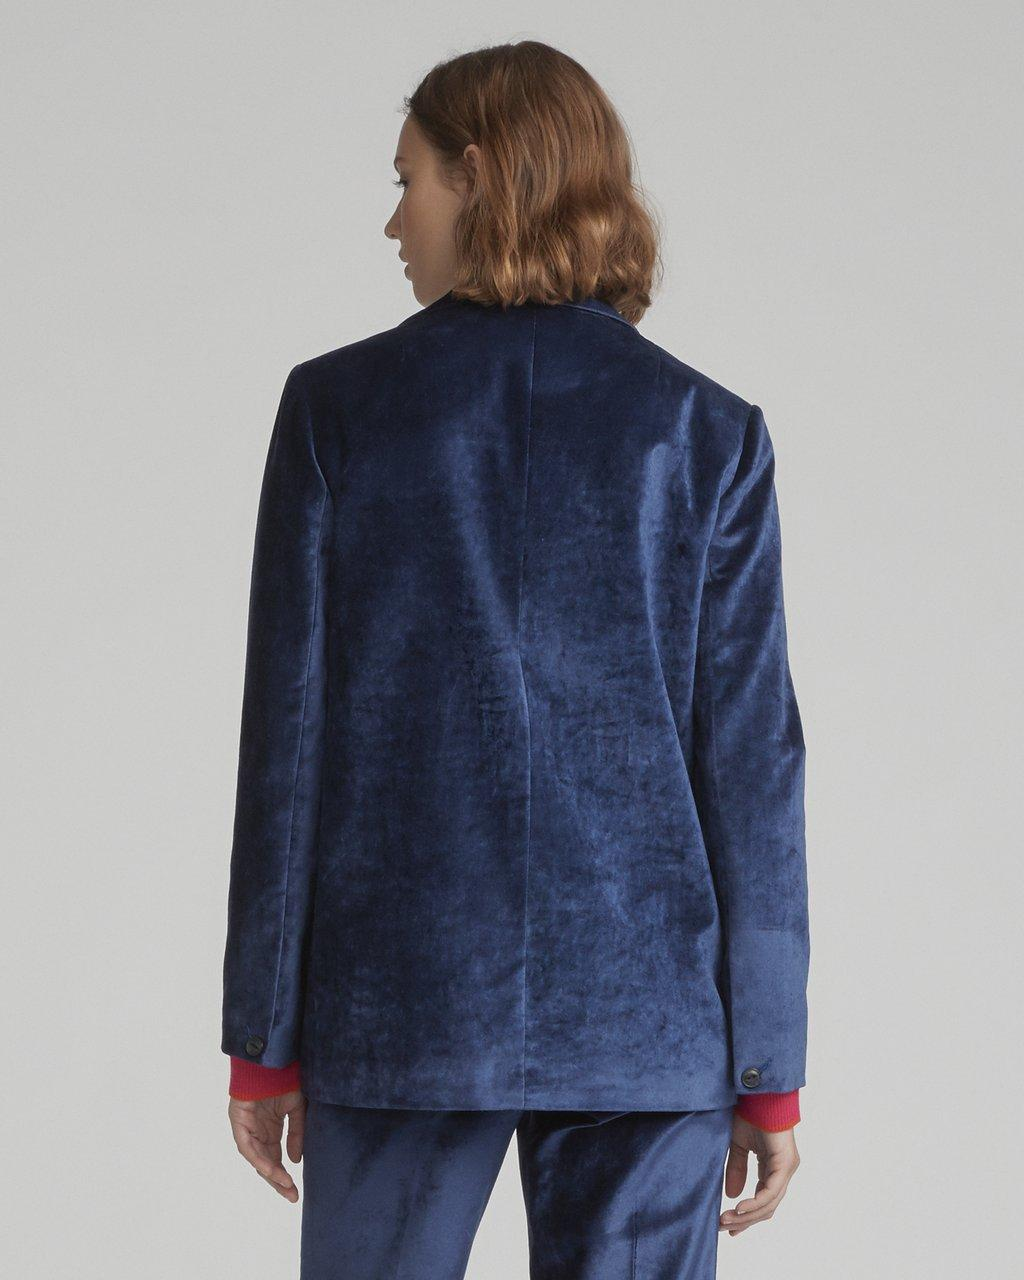 $650 NEW RAG /& BONE MONTY OVERSIZED VELVET DENIM BLUE BLAZER JACKET WOMEN/'S 6